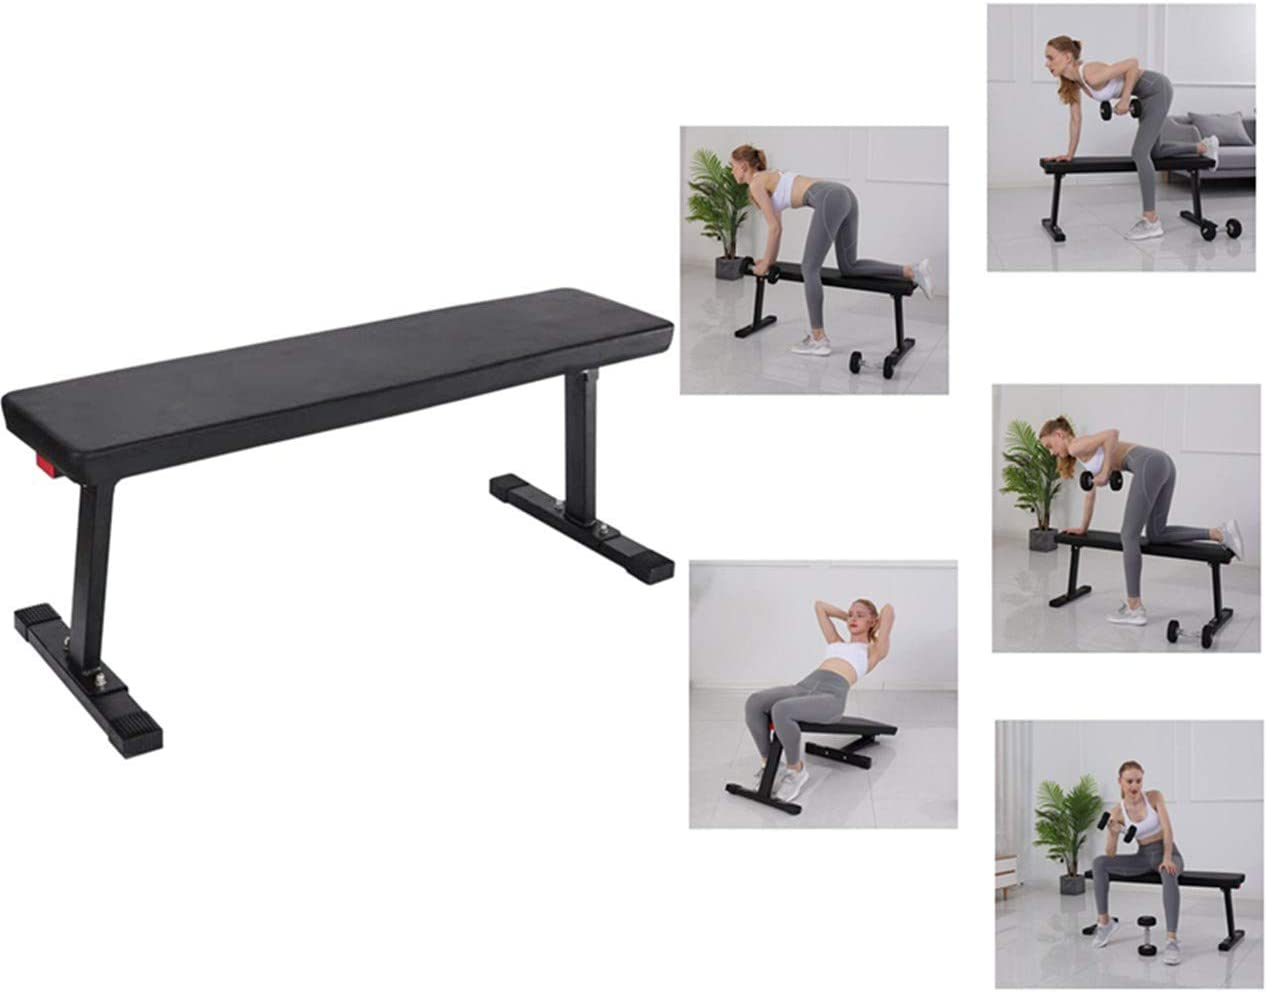 41X14.5X17 600 lbs Capacity Flat Utility Weight Bench for Weight Training and Ab Exercises SB-315 Black